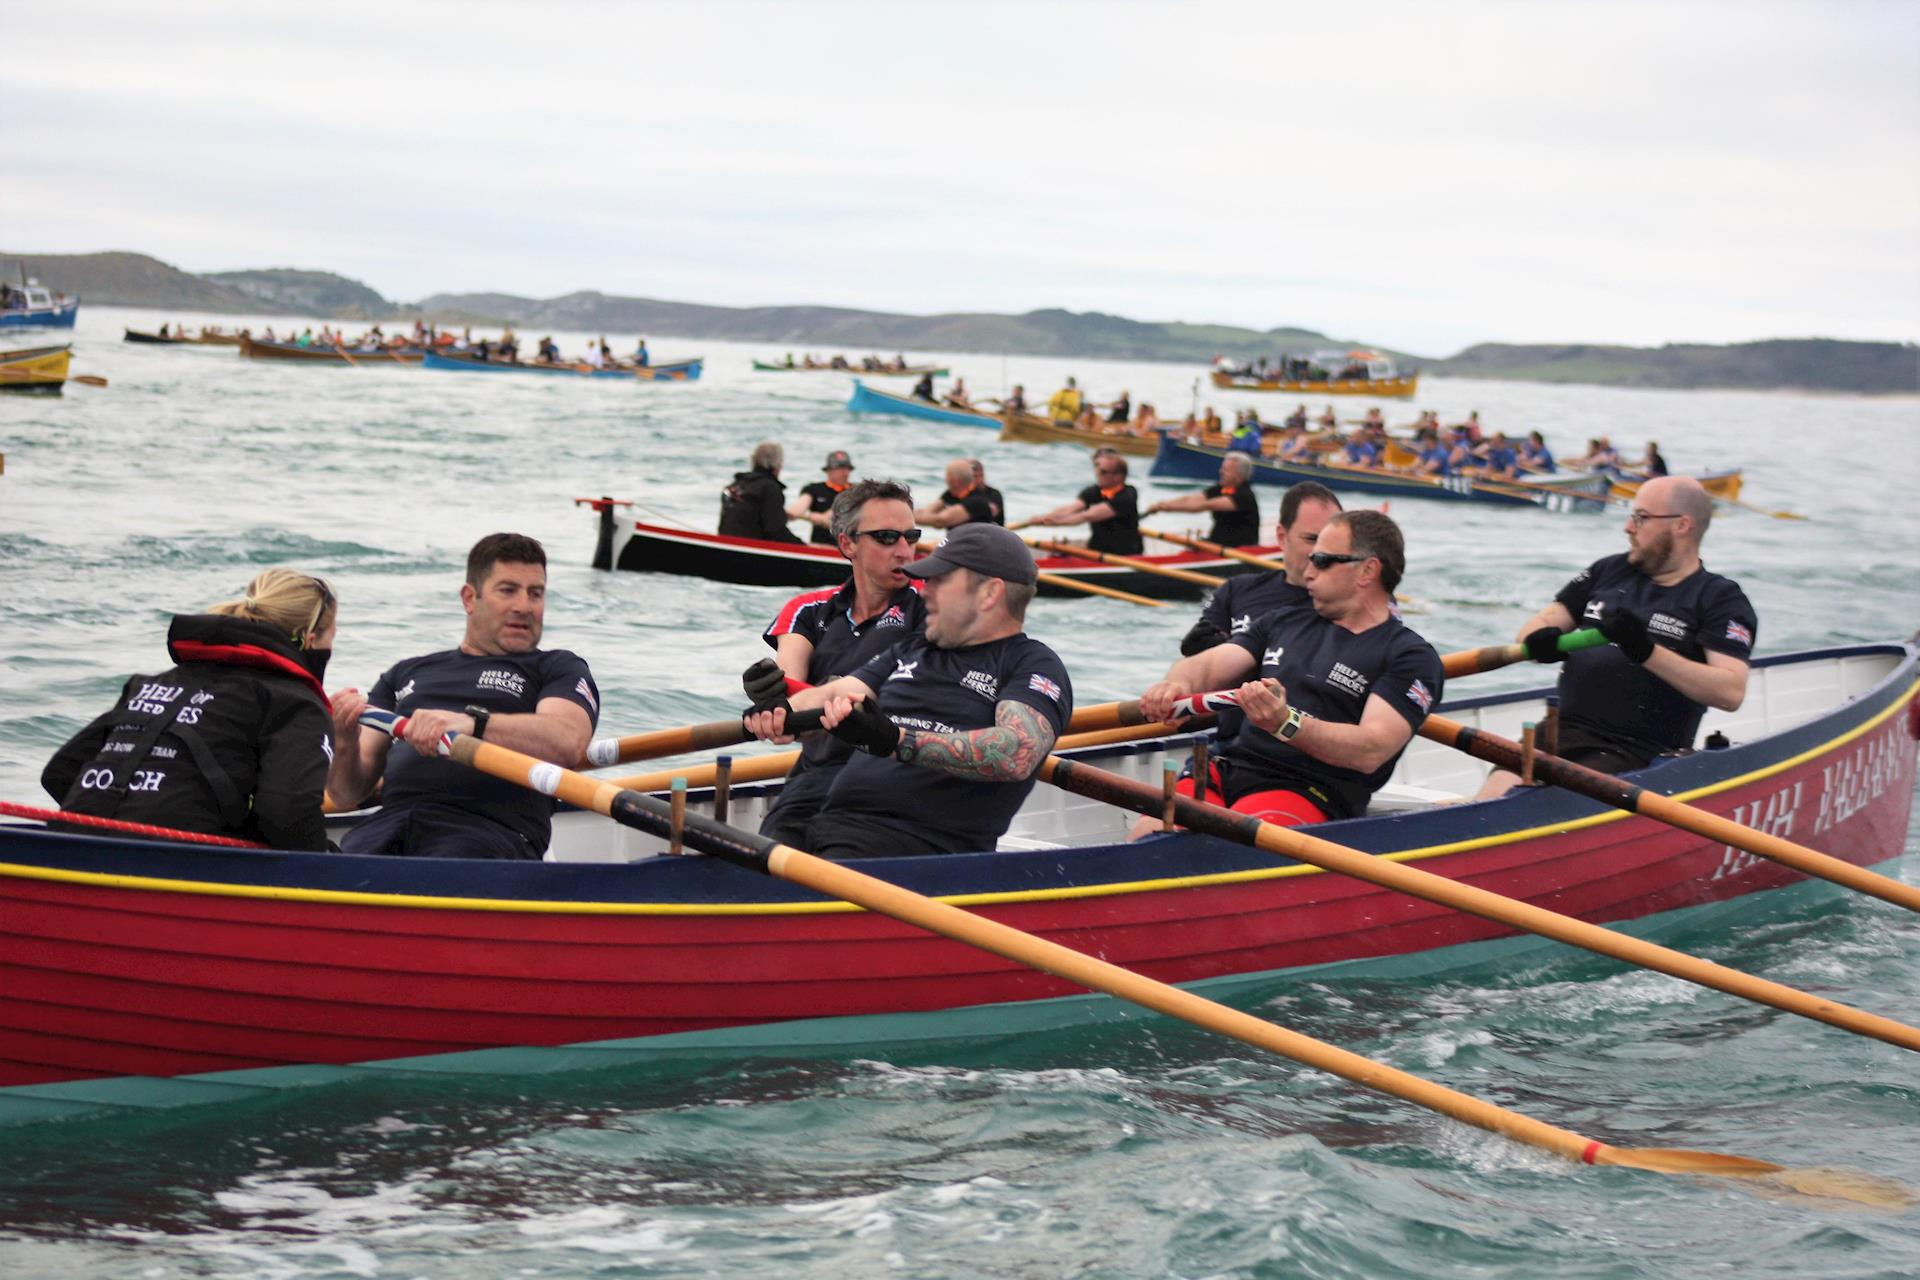 The Veterans Race in the Isles of Scilly